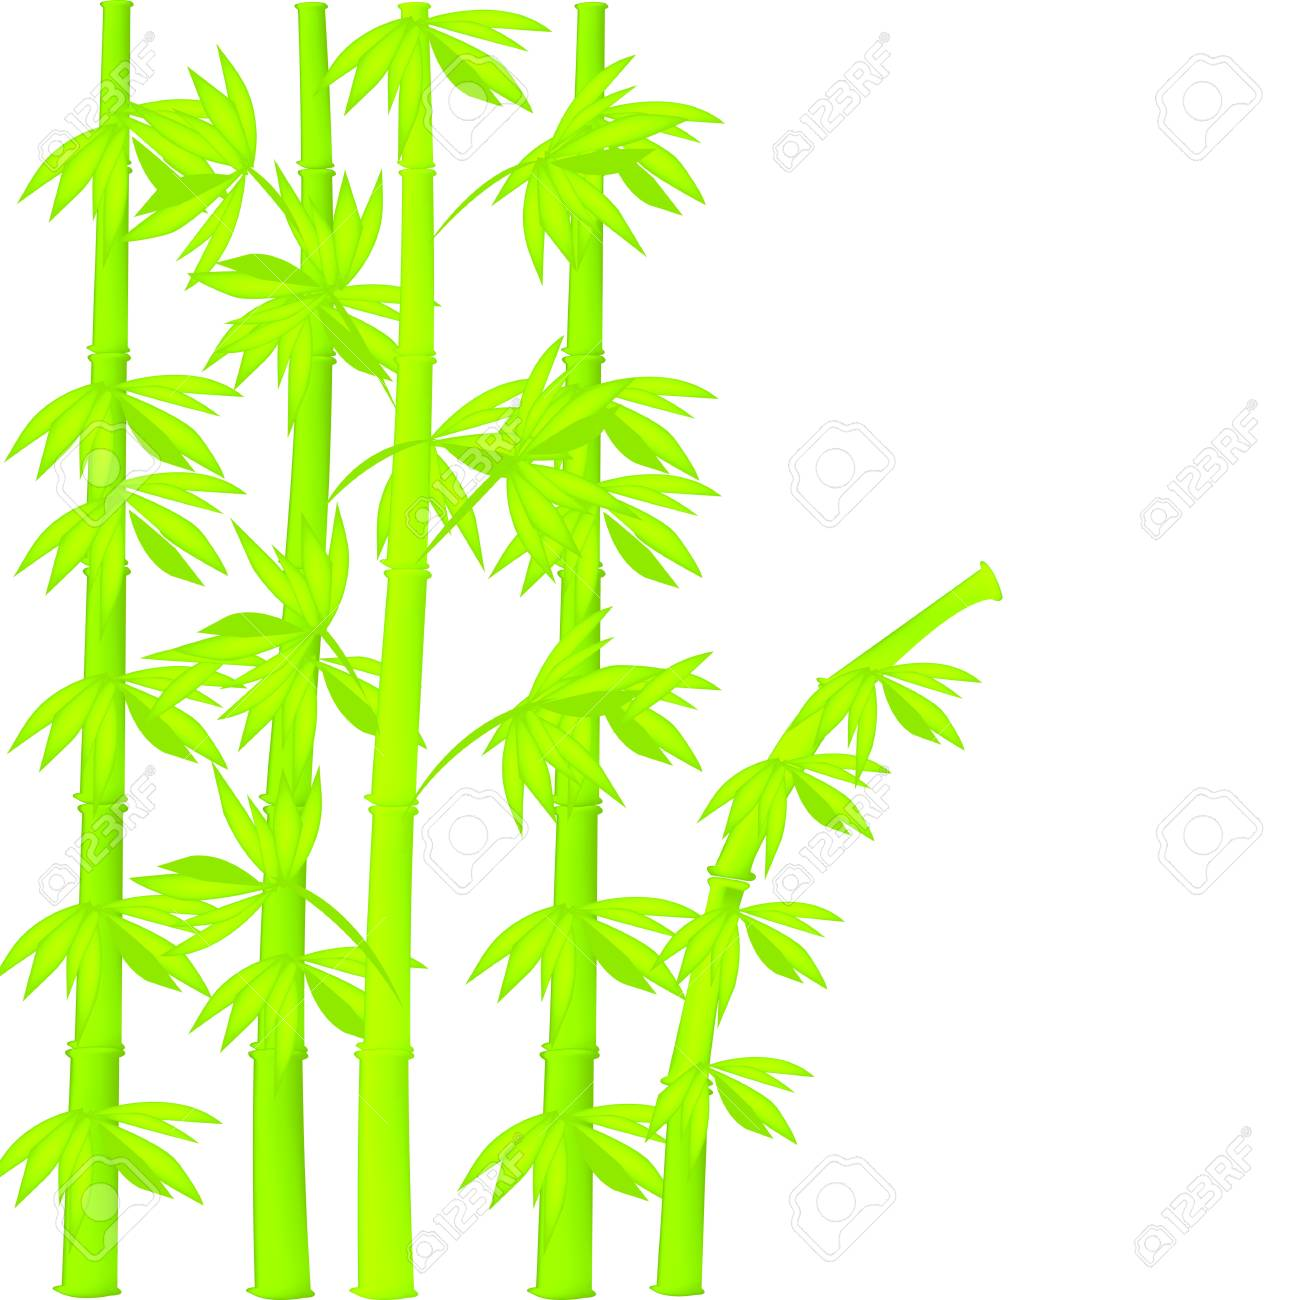 Bamboo illustration Stock Vector - 11958189